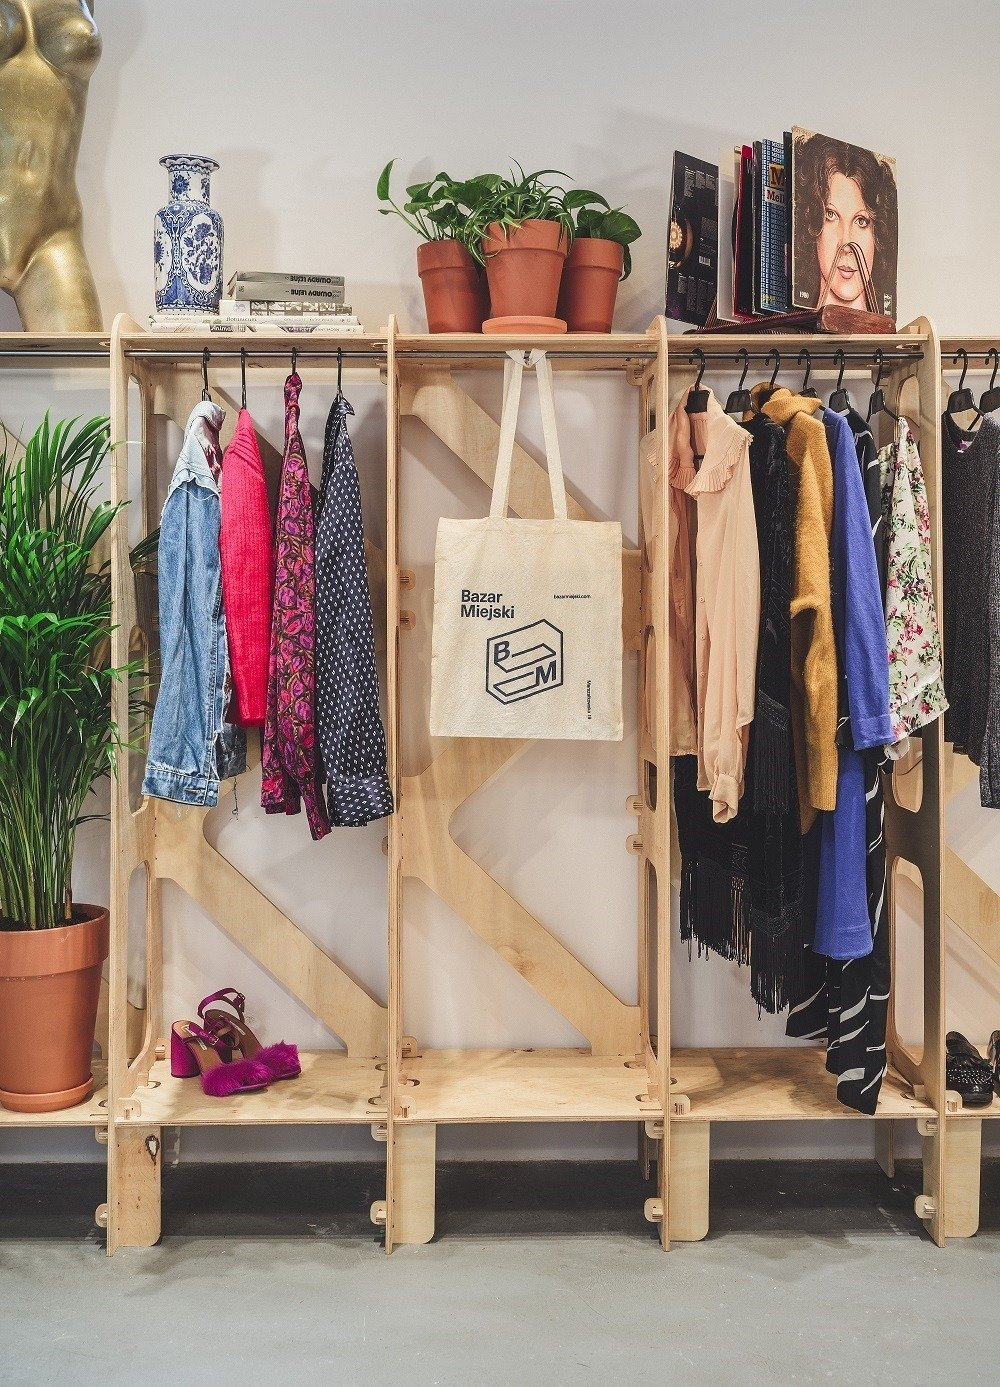 Second-hand shopping is being revolutionised and expanding the circular economy